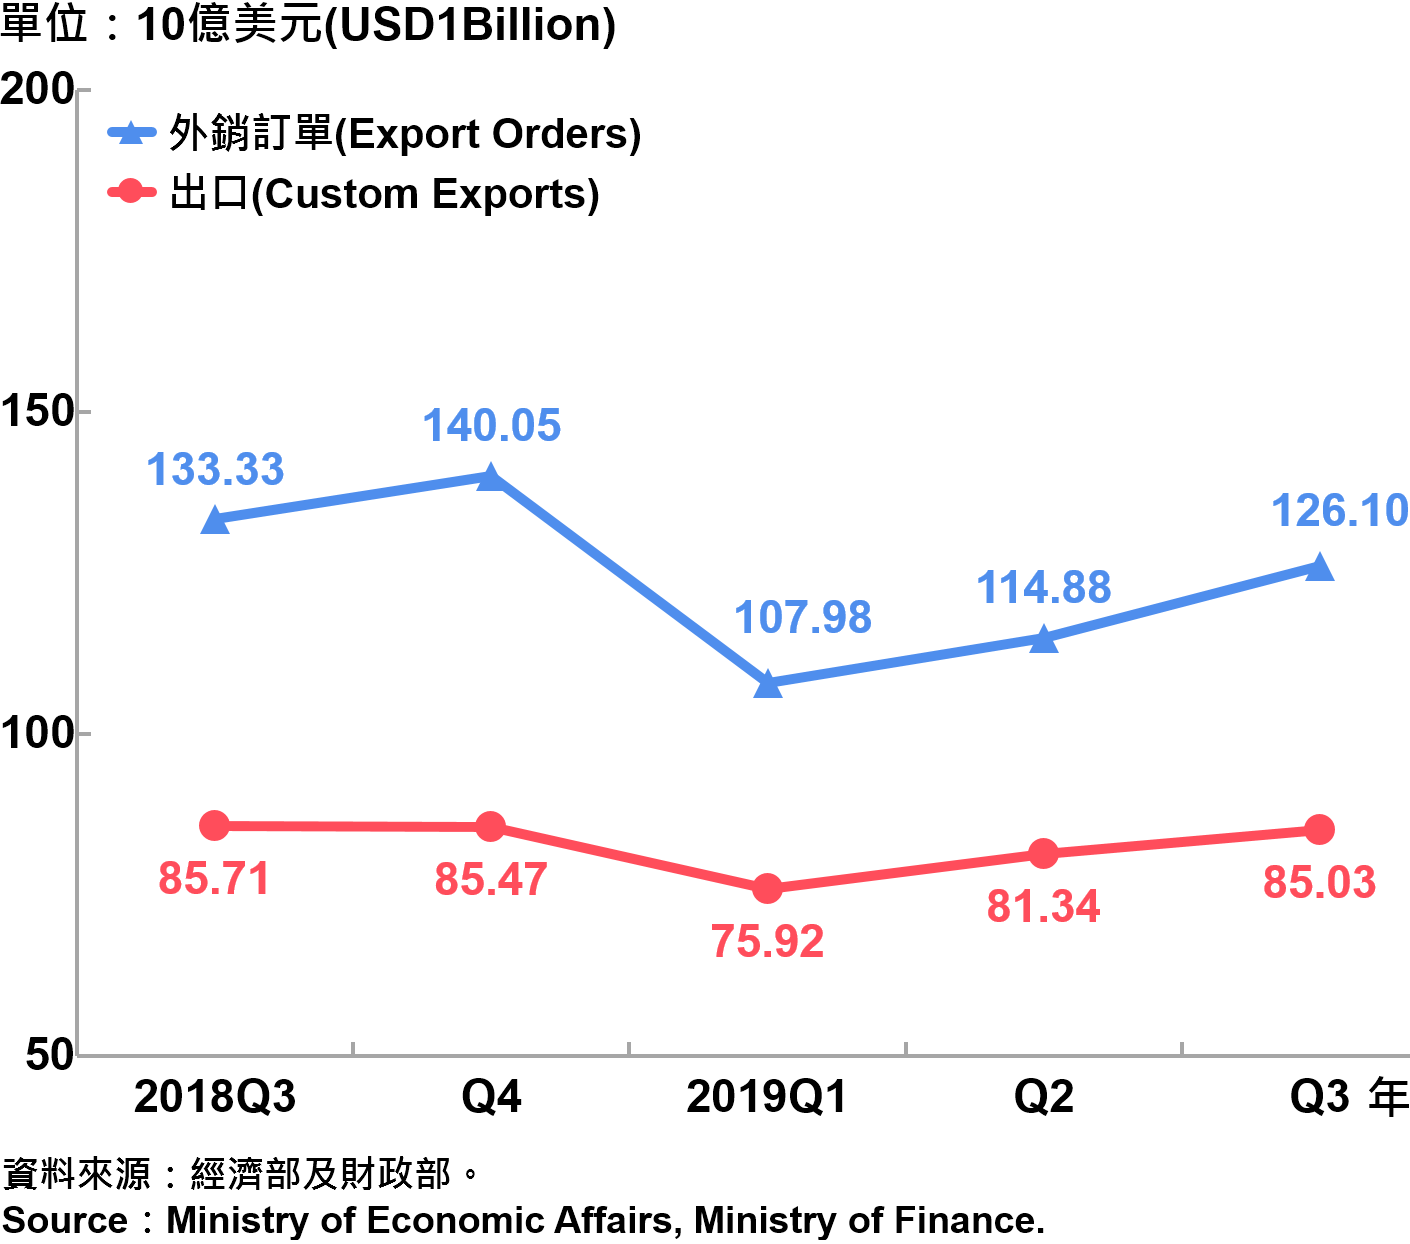 臺灣海關出口與外銷訂單 Custom Export and Export Orders in Taiwan